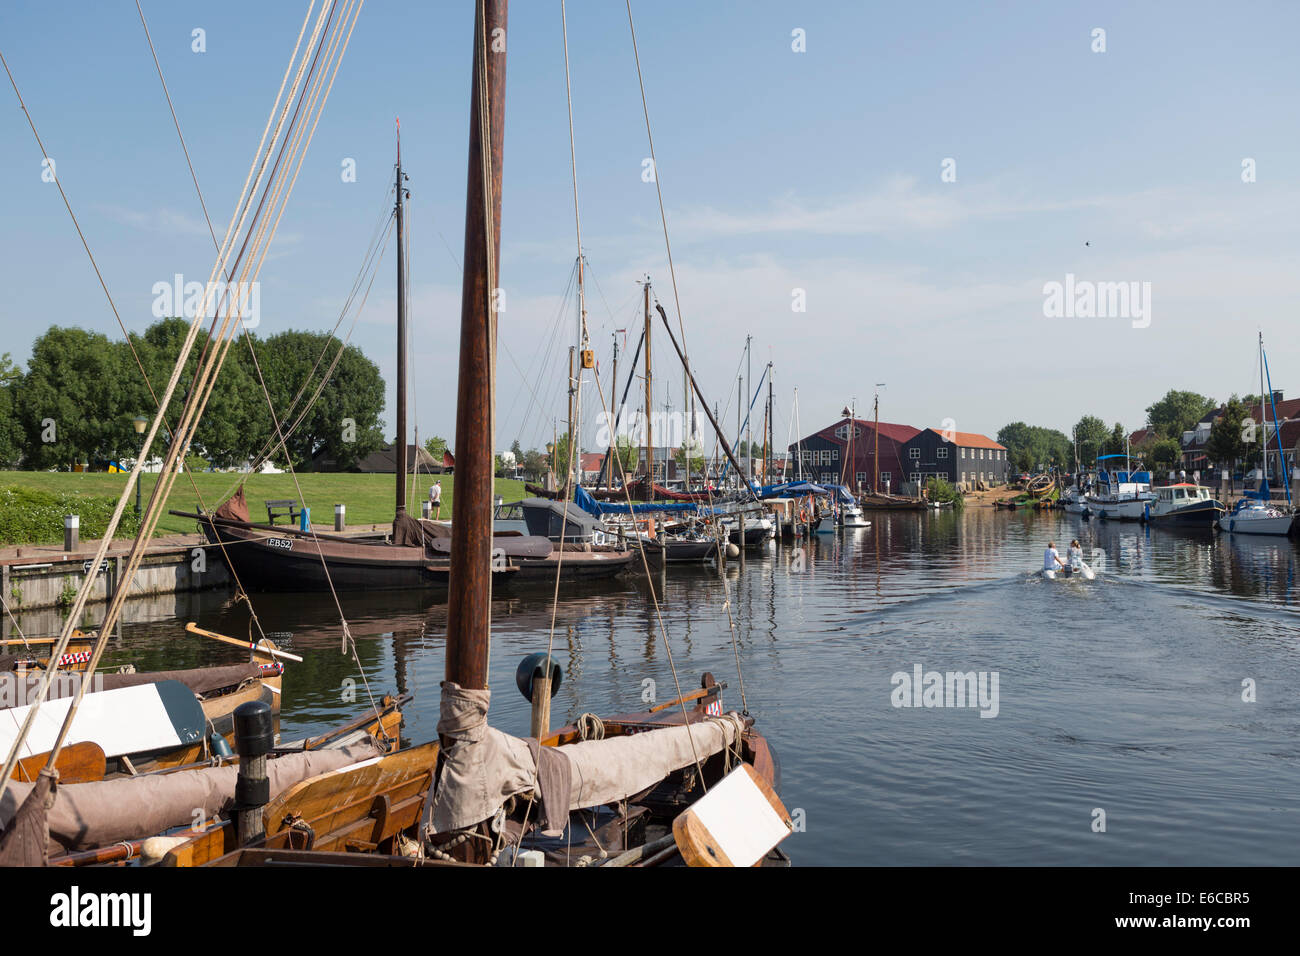 Harbor of Elburg, an old  Hanseatic city in the Netherlands, with old wooden fishing boats. - Stock Image